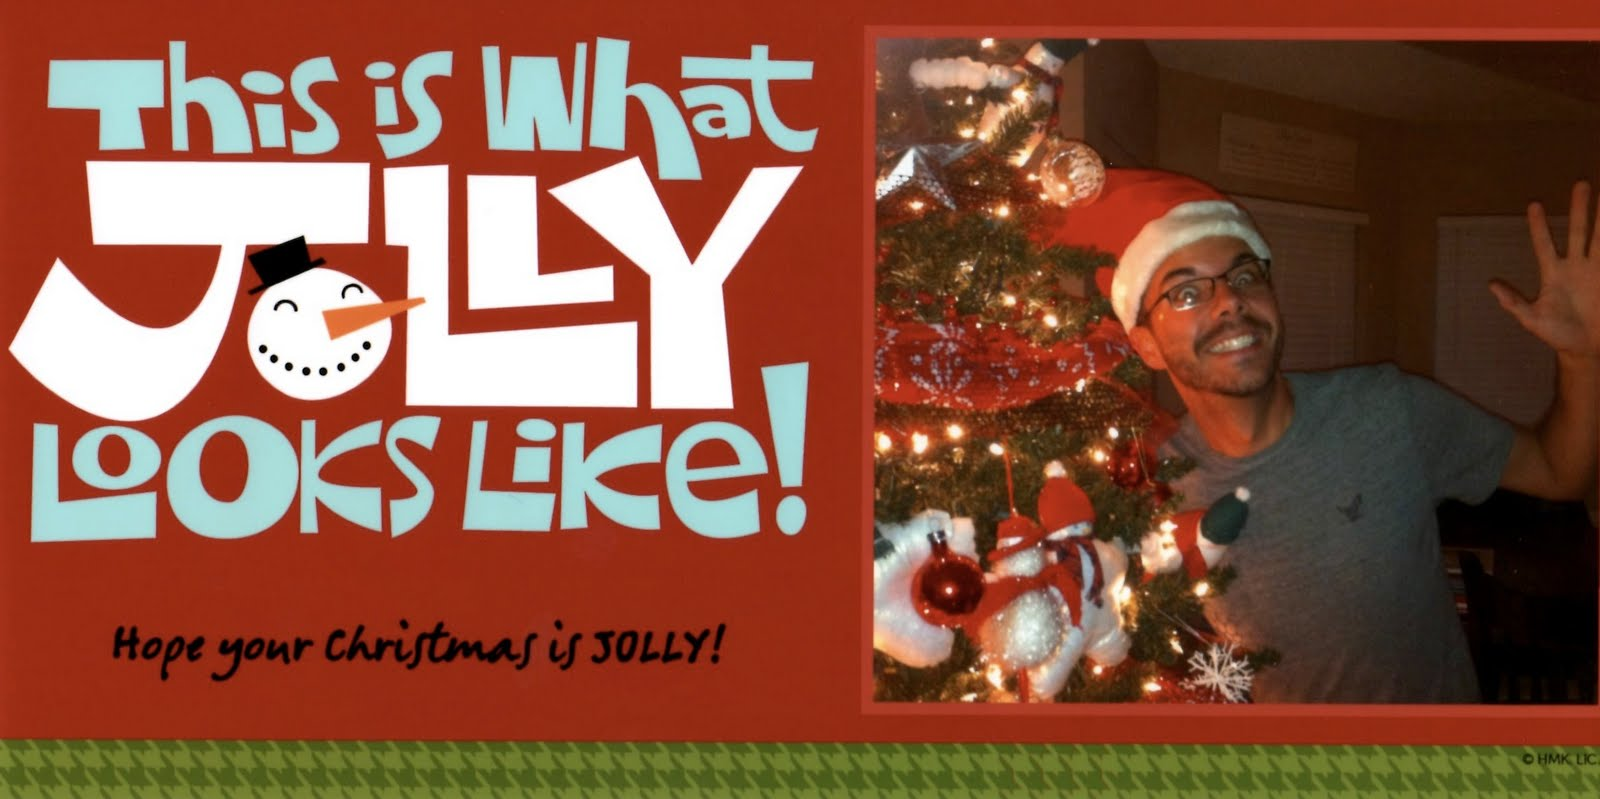 Worst Christmas Cards - The Best of the Worst Holiday Cards: Part ...